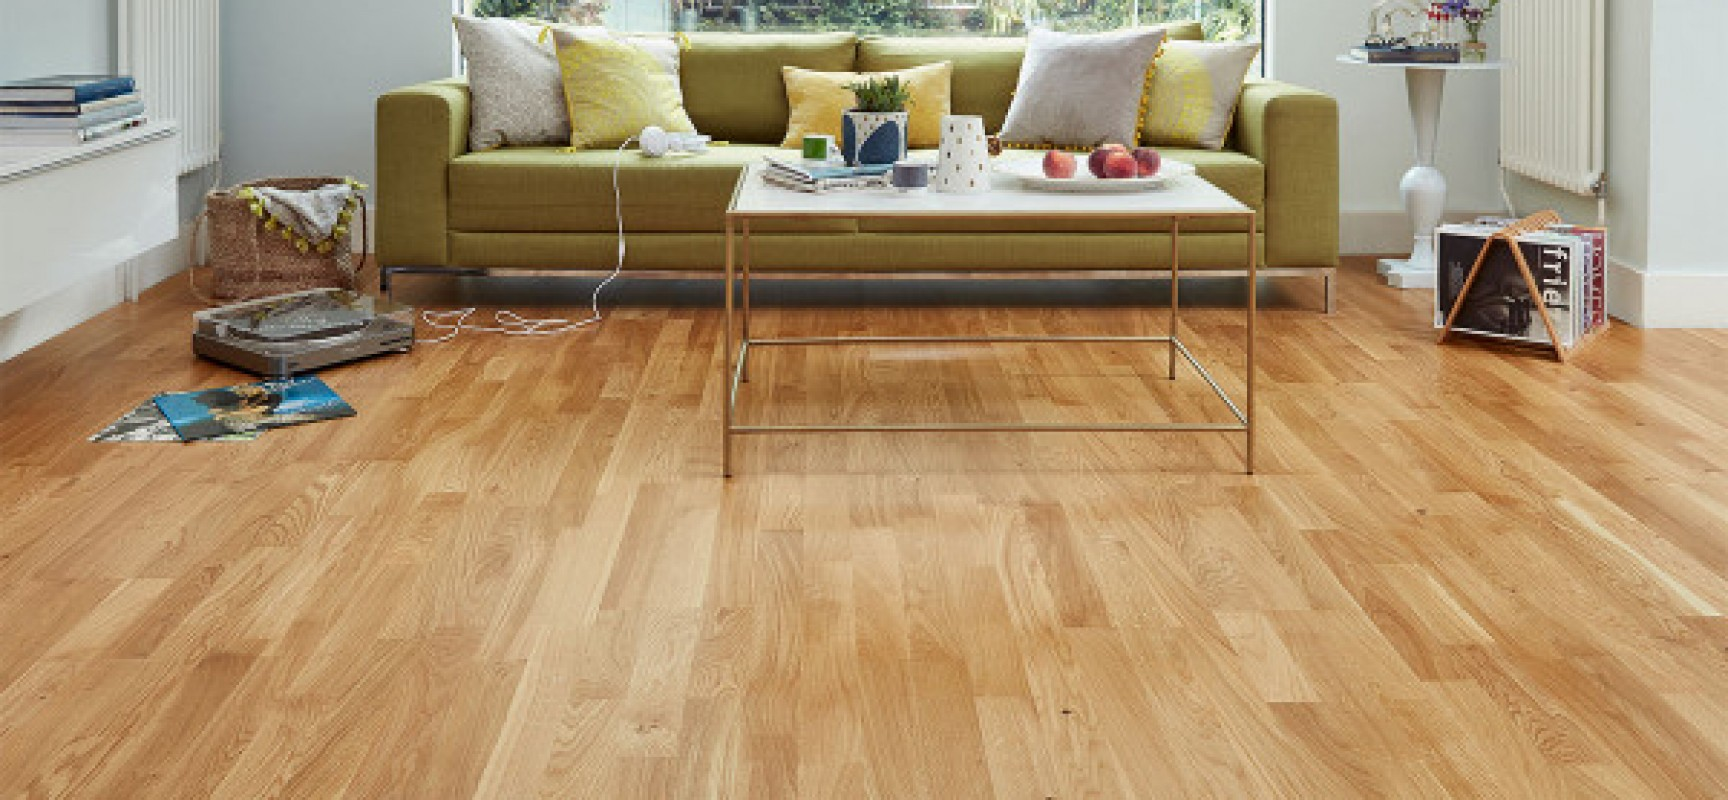 Easy Ways to Care for Your Home's Wood Flooring